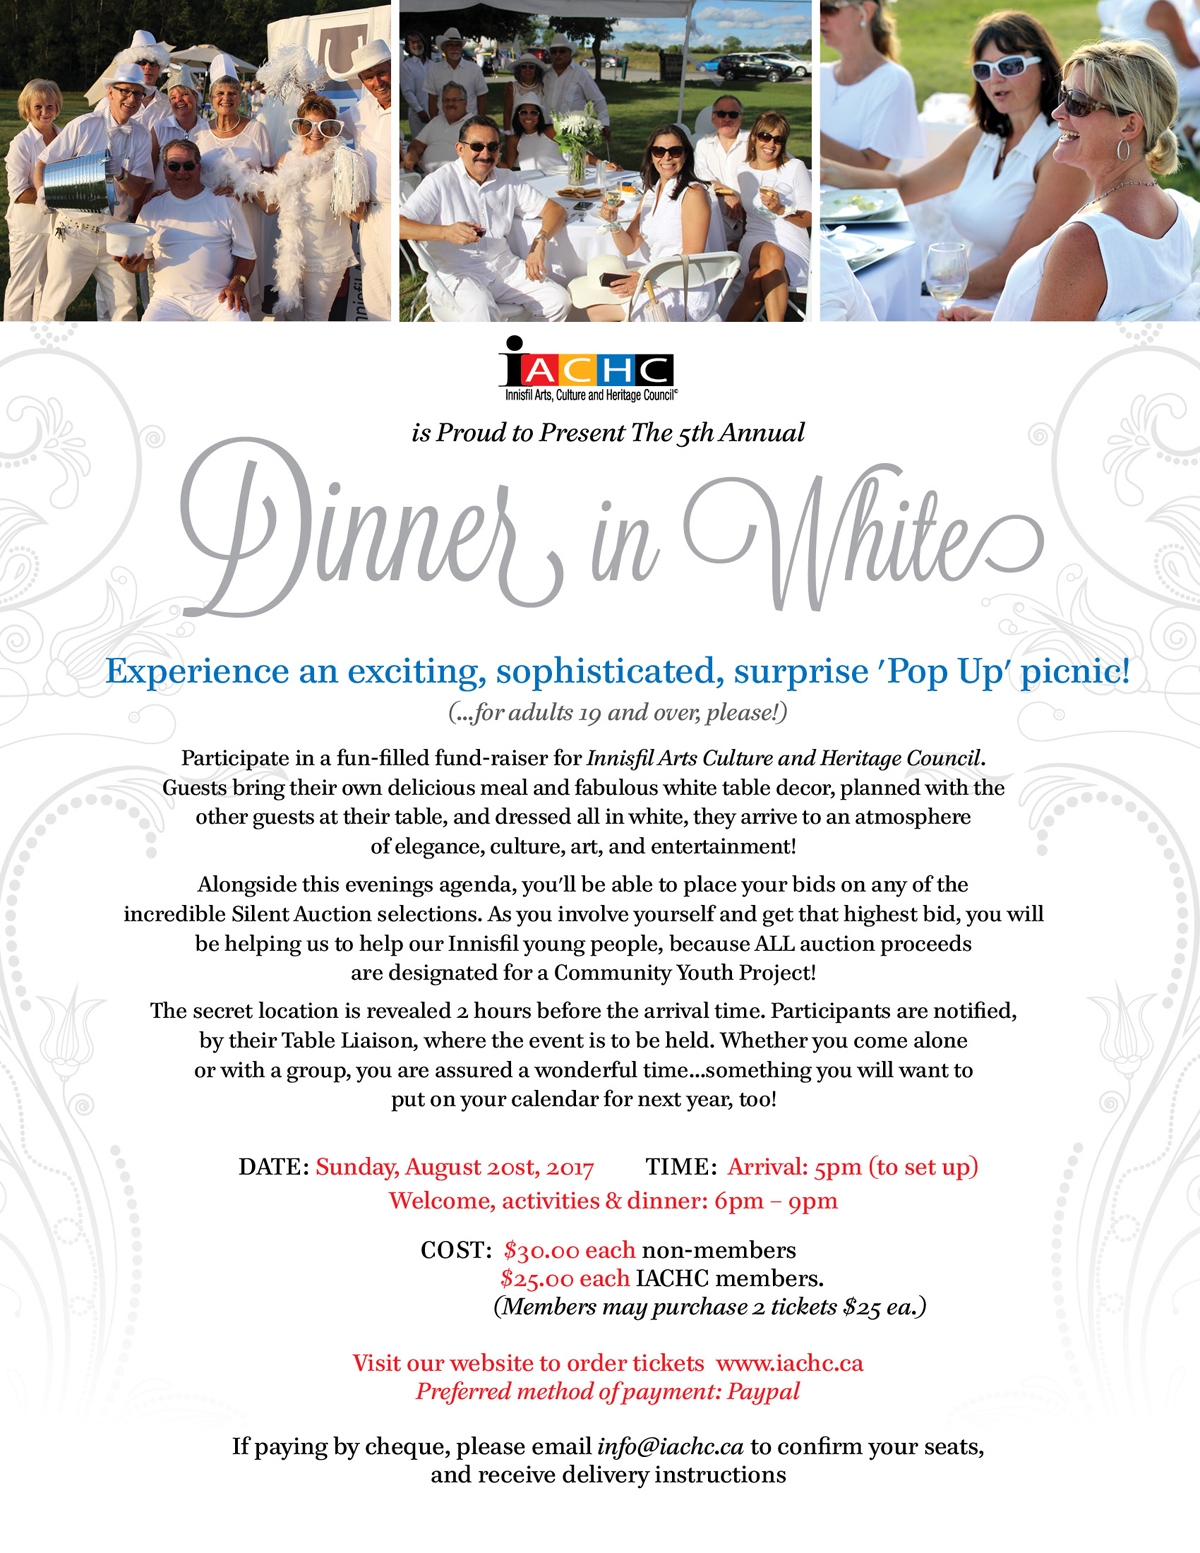 Innisfil Dinner in White, IACHC Event, August 20, 2017